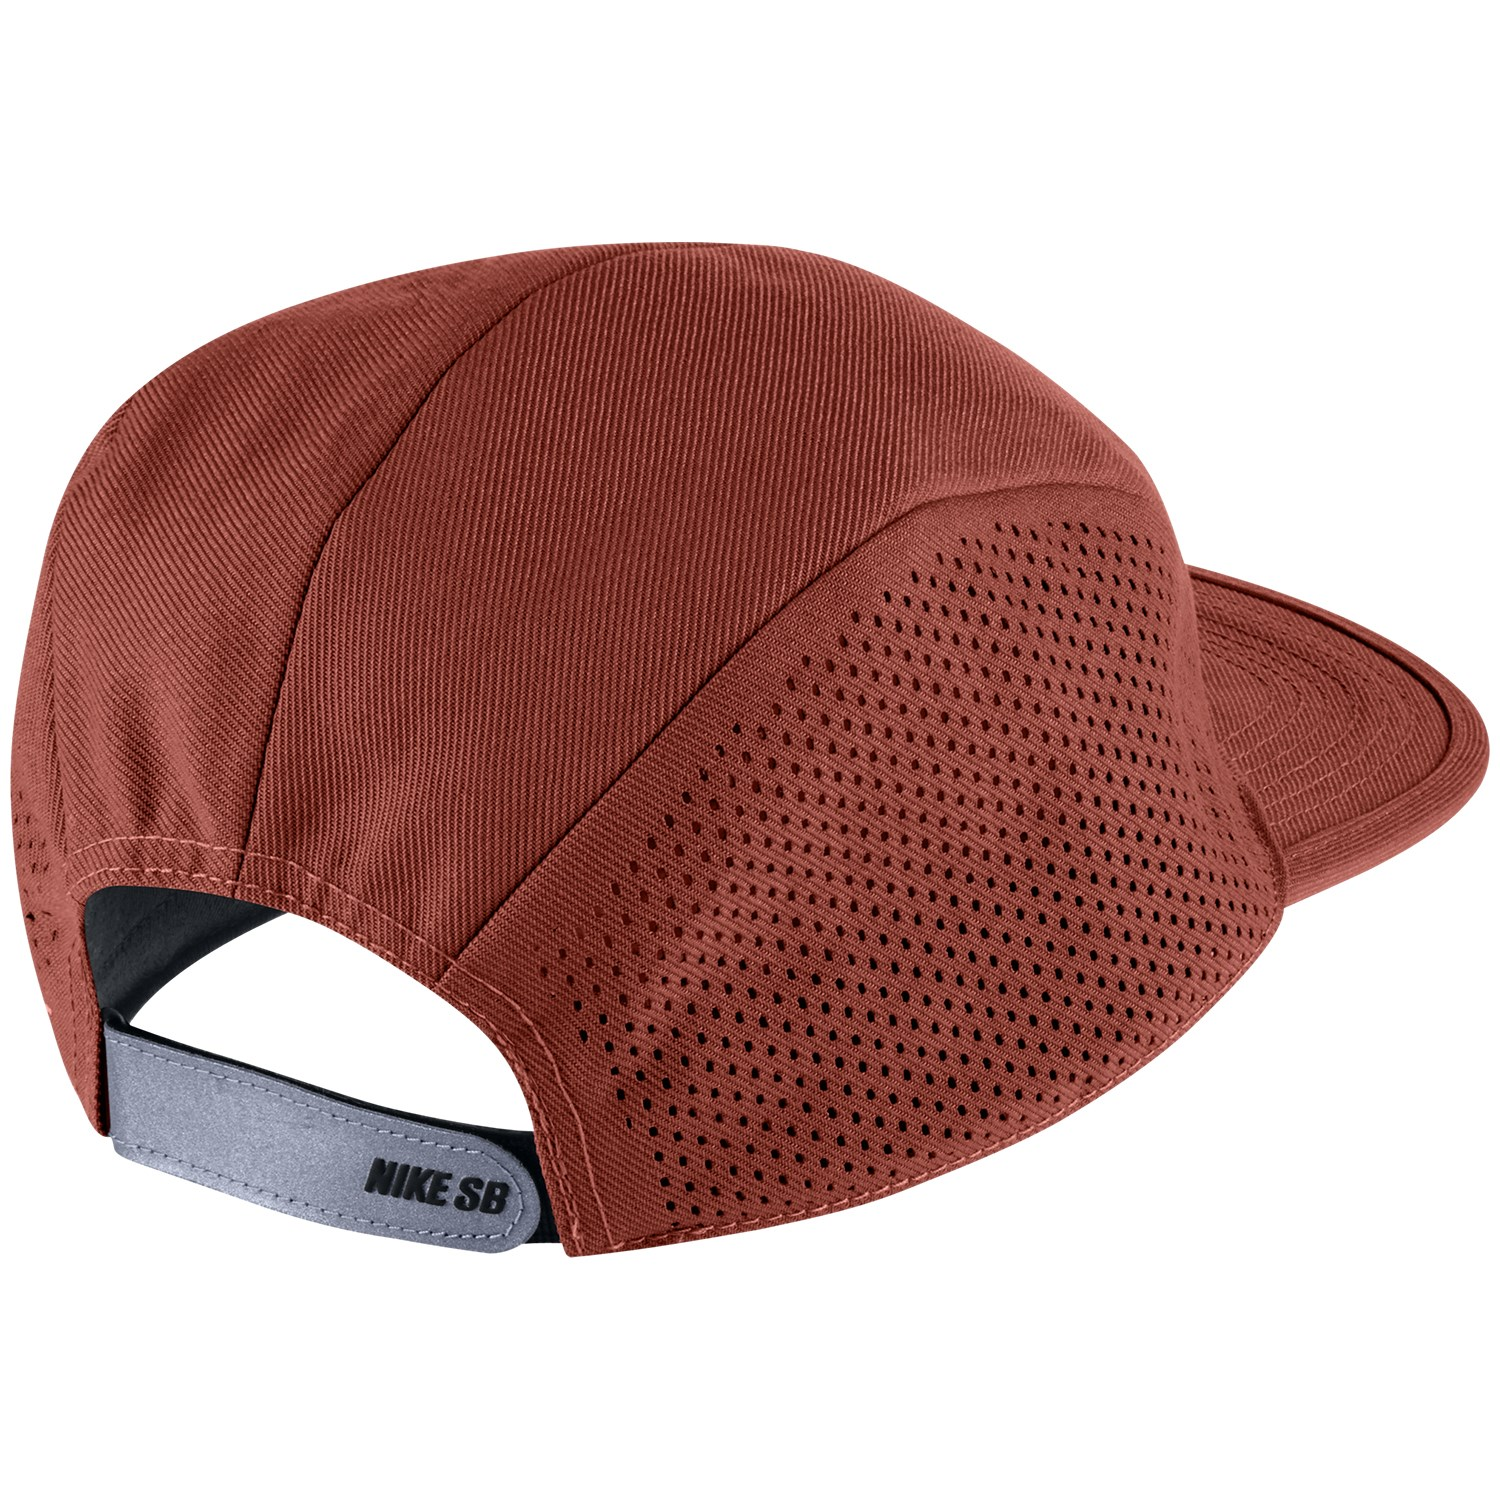 01e964e3c4 Nike SB Performance 5-Panel Hat